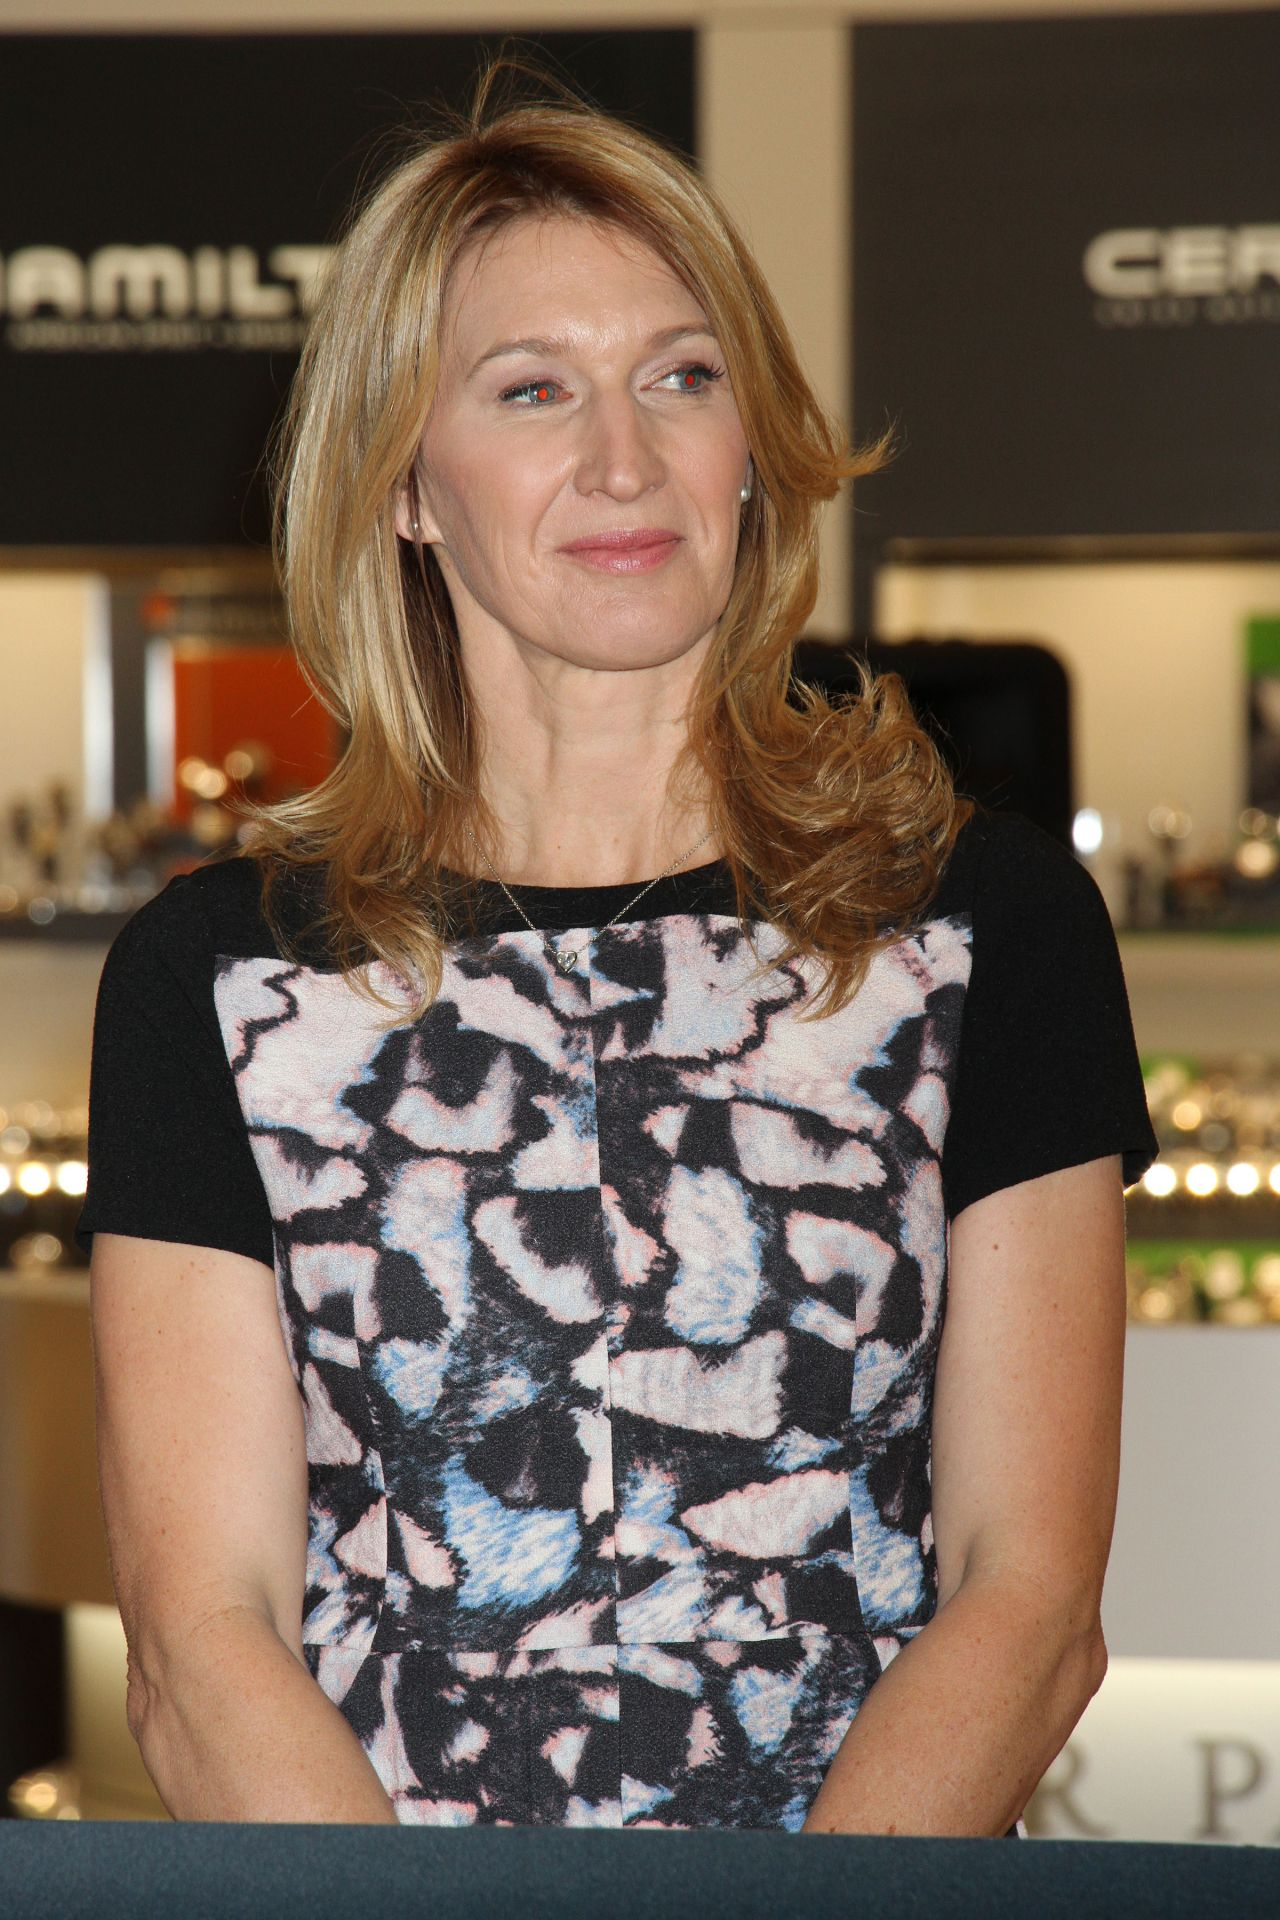 Images Steffi Graf Minimalist steffi graf - 'hour passion boutique' opening at aria resort